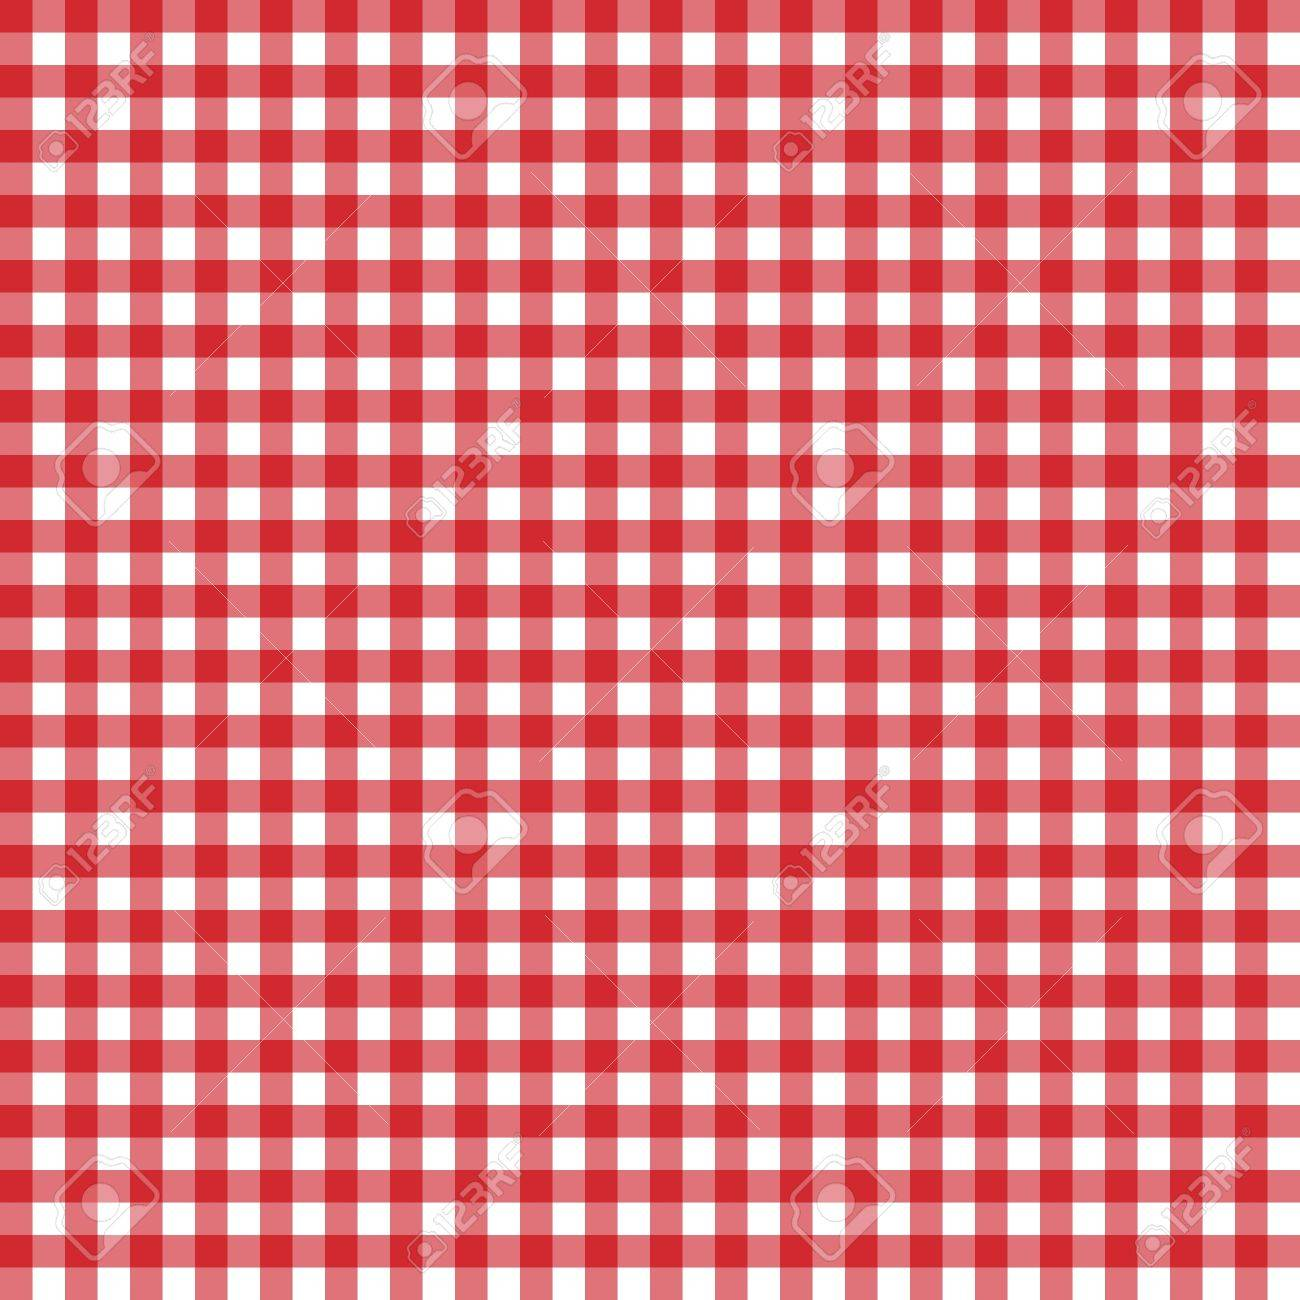 red classic checkered table cloth texture background with copy